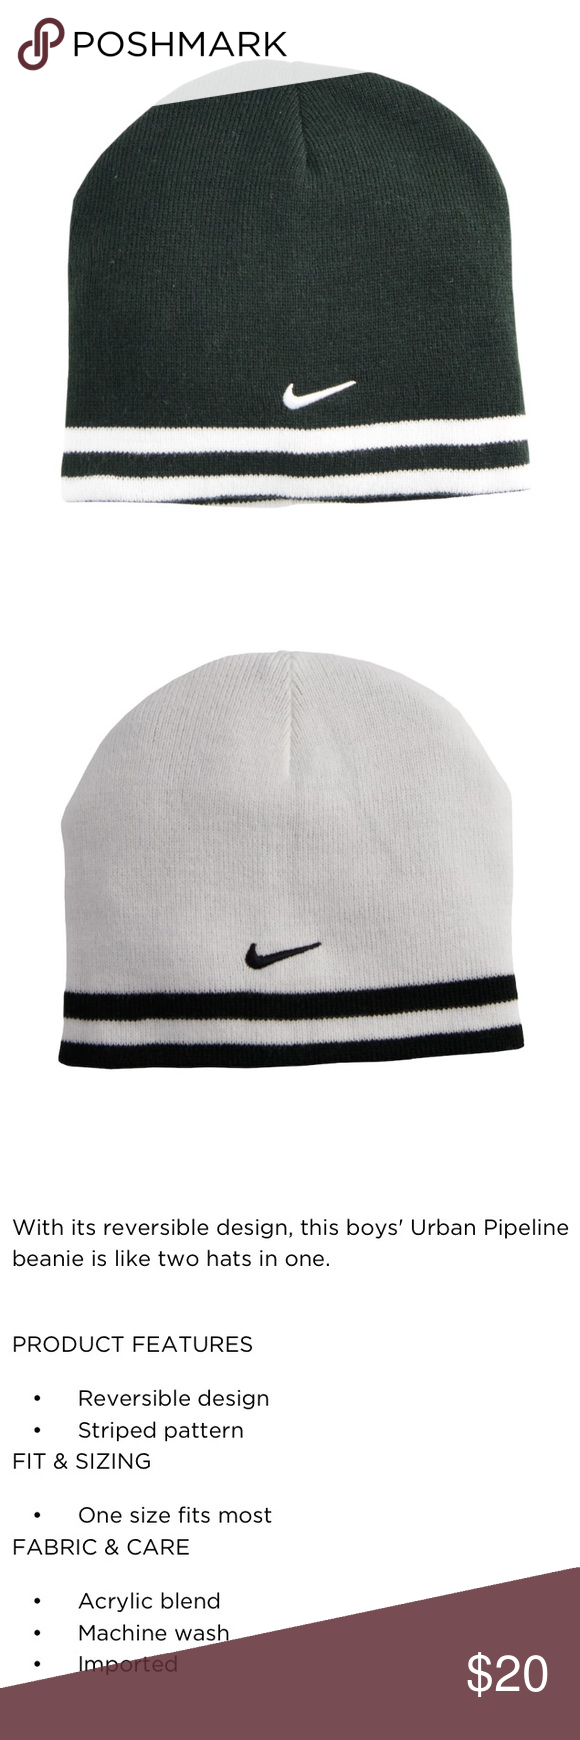 954d8551f753d Nike Boys Reversible Striped Beanie Hat Nike Boys Reversible Striped Beanie  Hat Brand new with tags